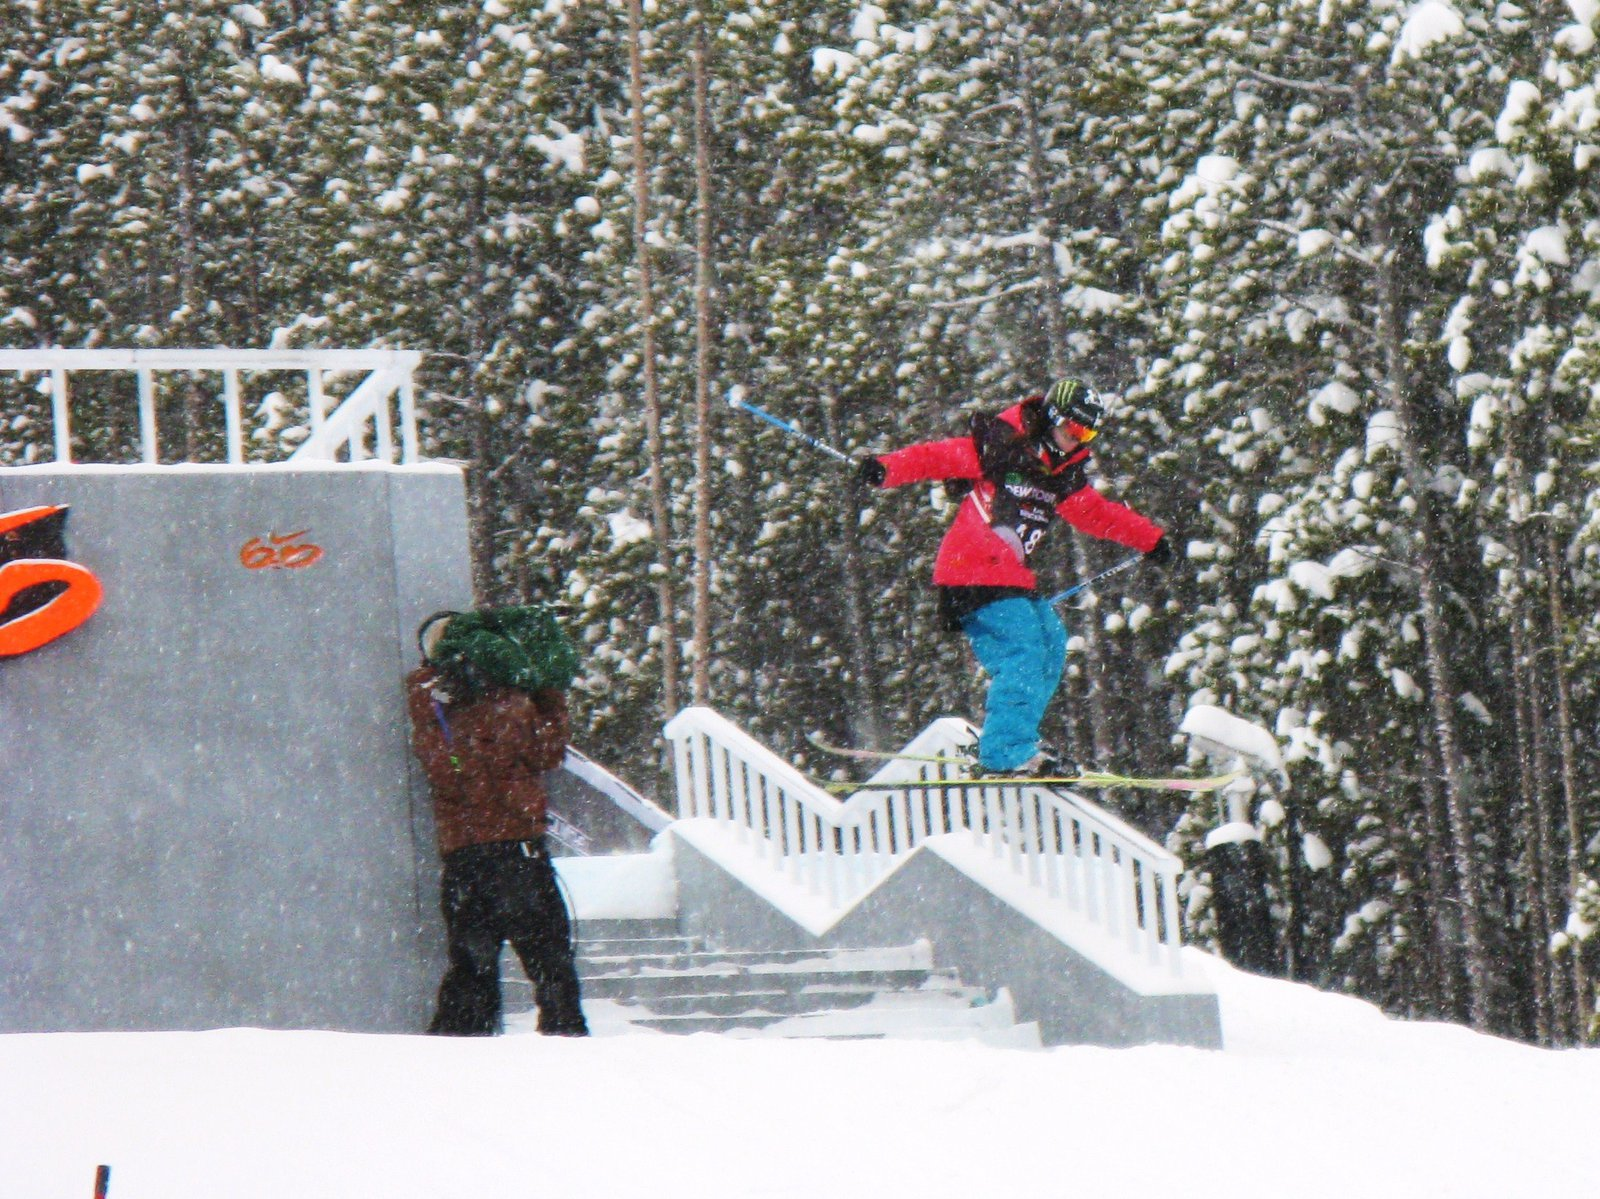 Keri Herman slayin the rail